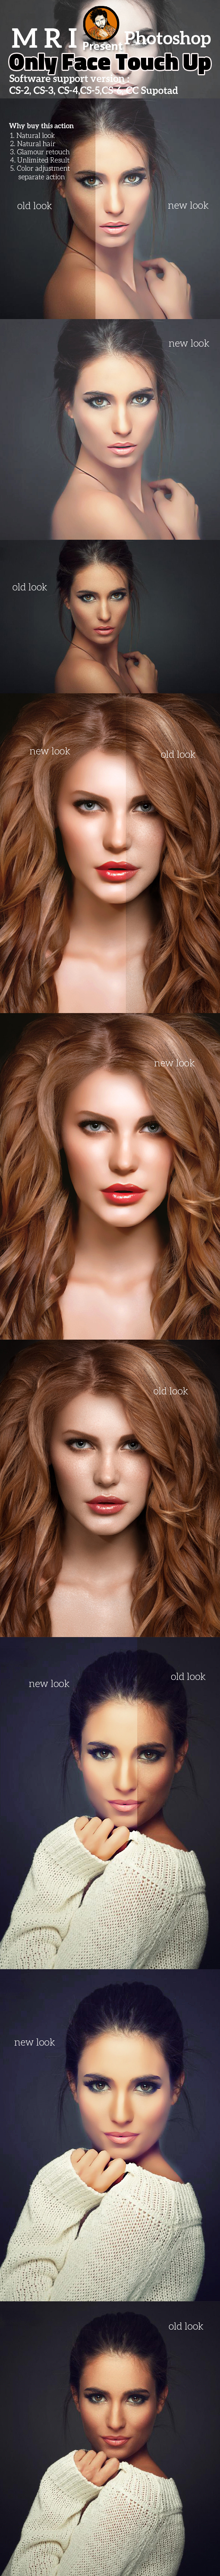 Only Face Touch Up - Actions Photoshop